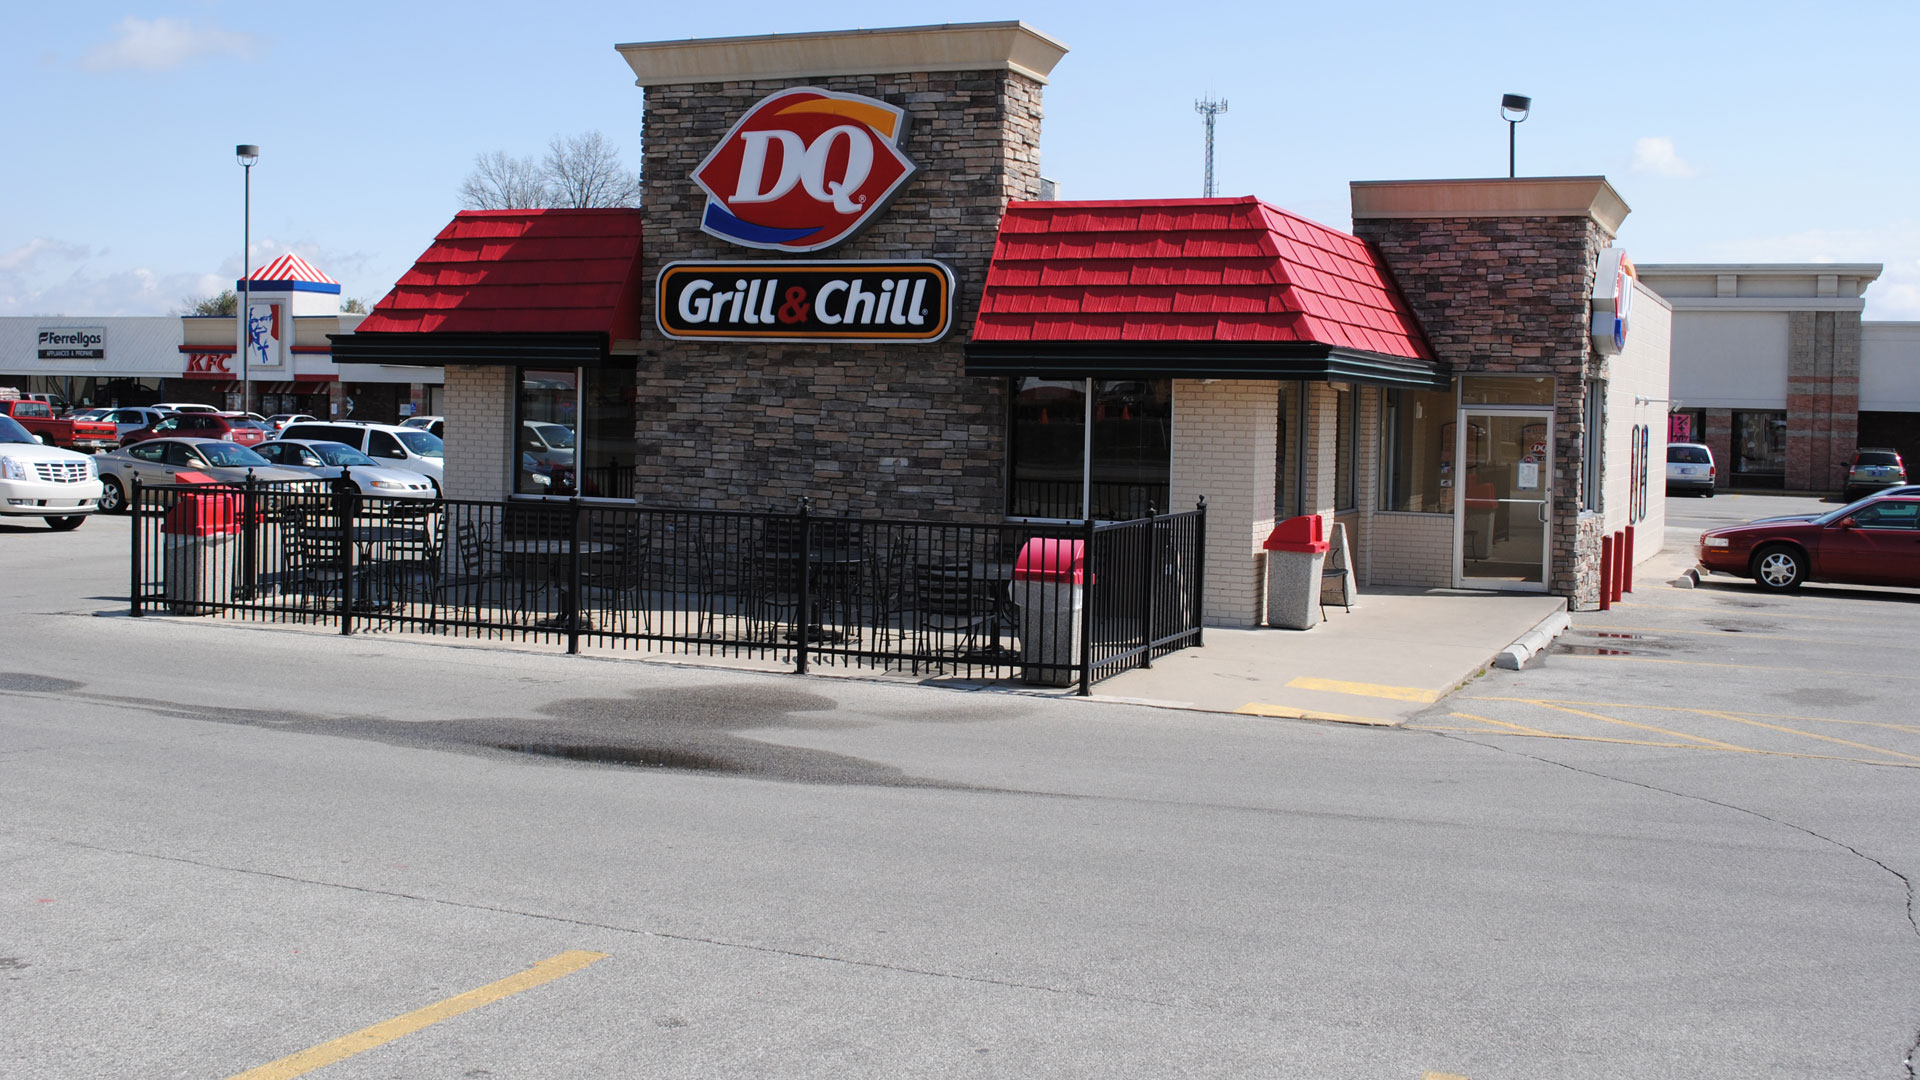 DQ Grill & Chill of DeMotte